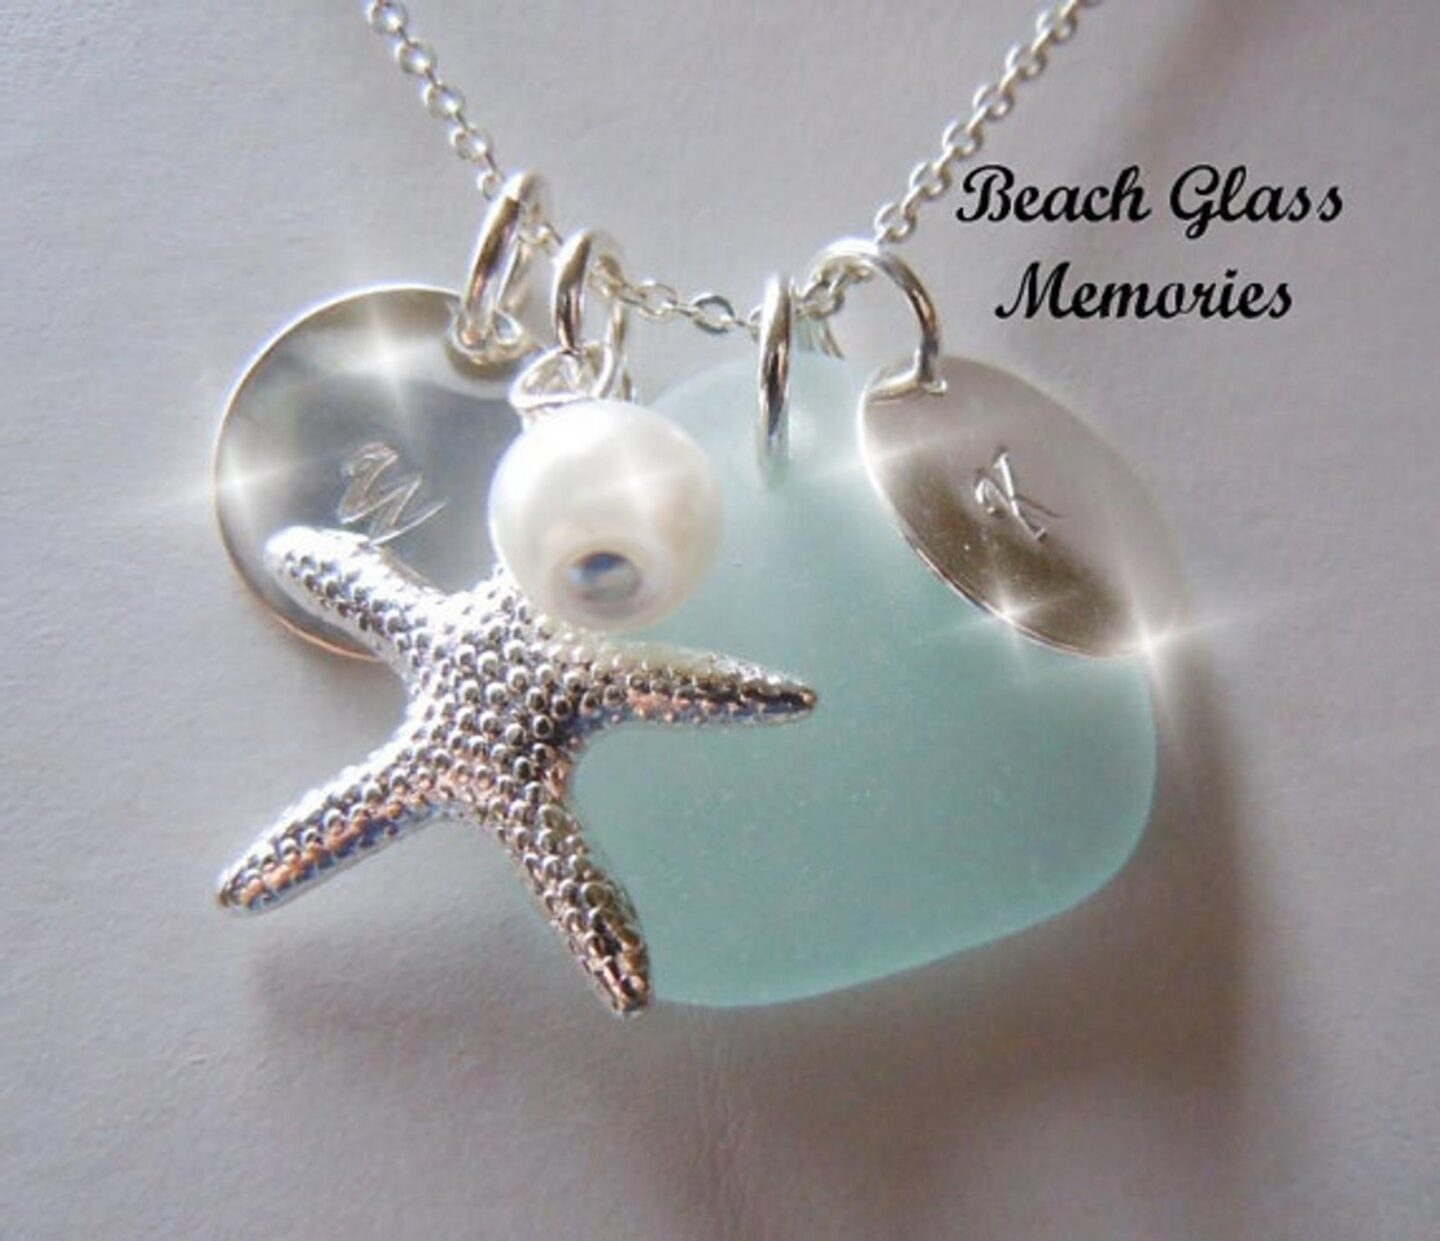 Beach glass jewelry from Etsy with a pearl, starfish and circle letter charm for great ideas for gifts for cruise lovers.